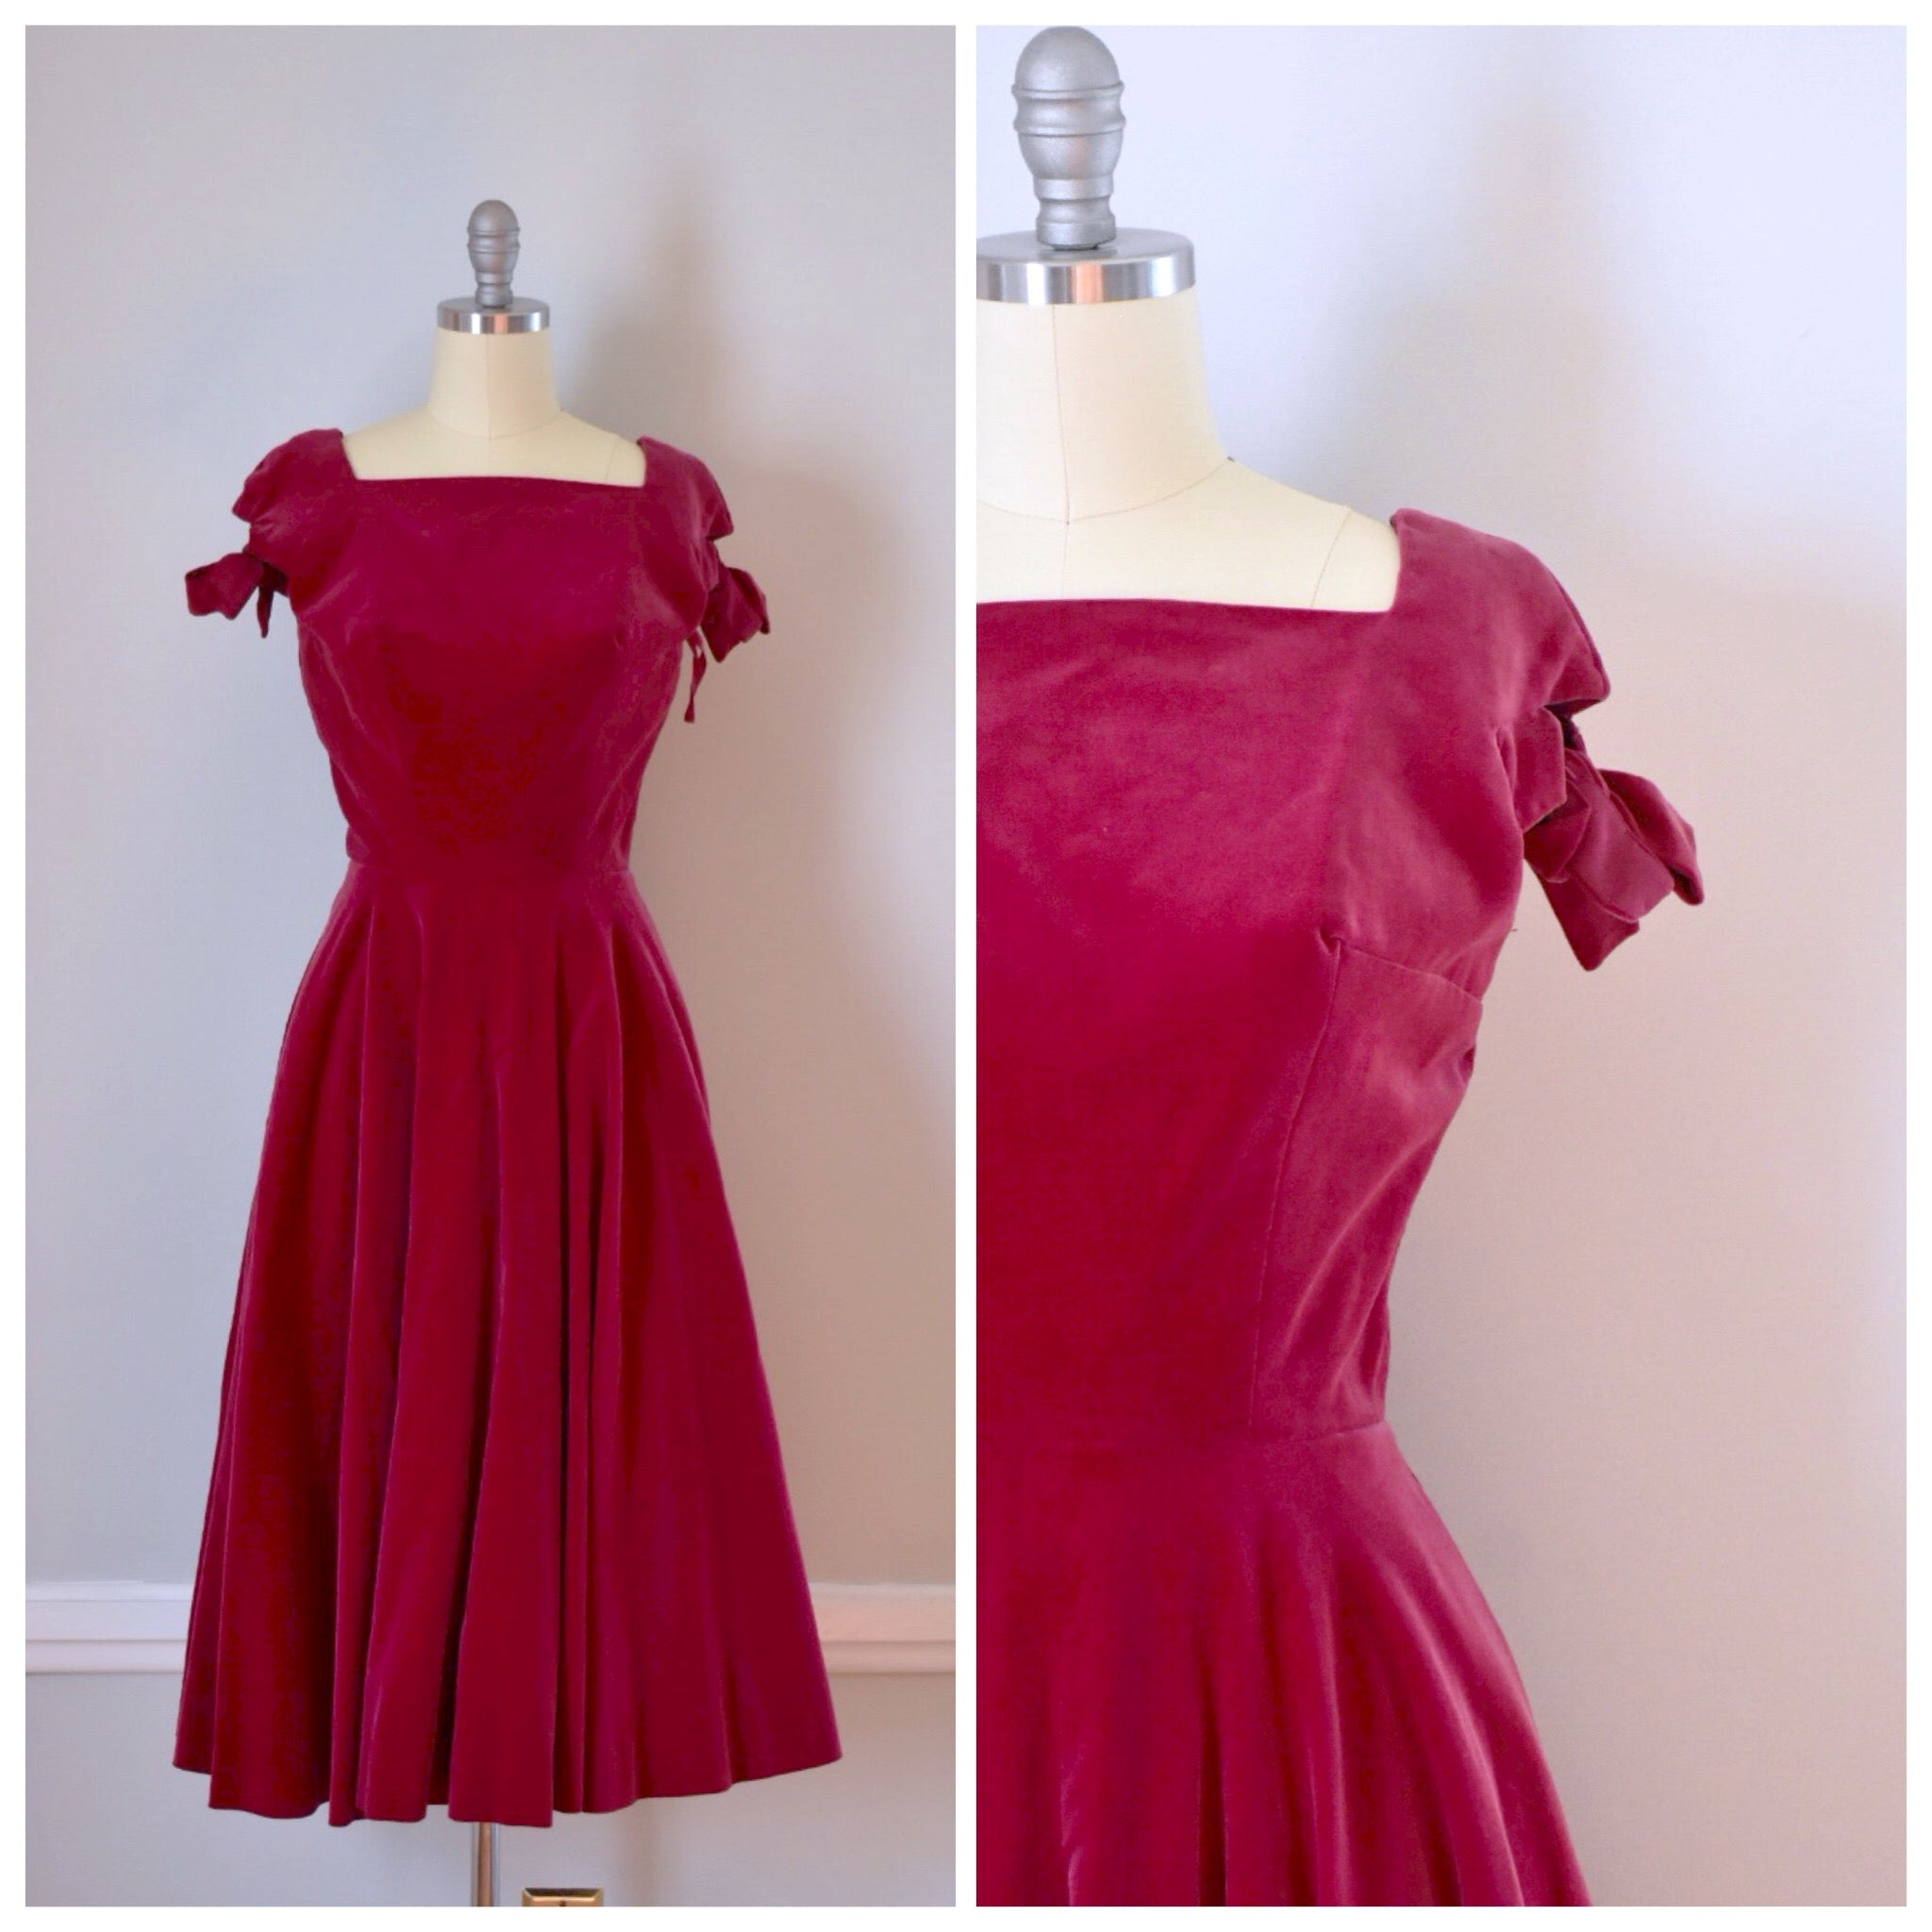 8c3d3424142b 50s Vintage Raspberry Red Velvet Party Dress – Duncan Loves Tess ...